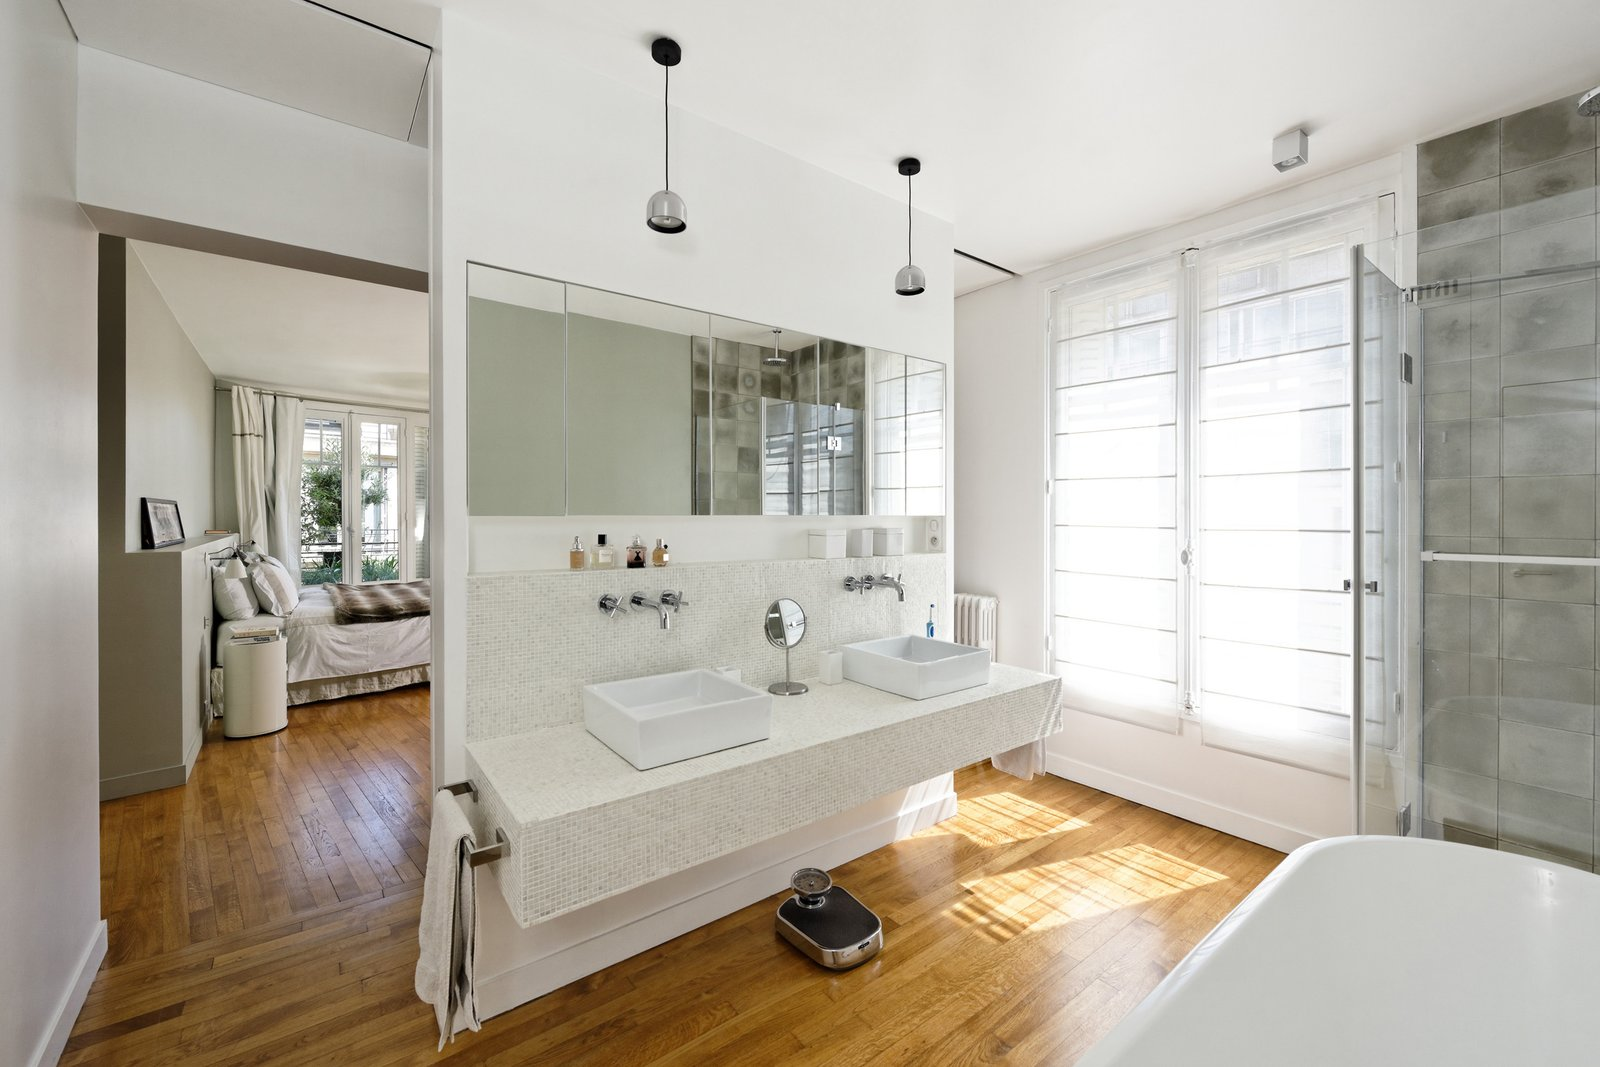 """The old living room and balcony on the sixth floor were transformed into the master bedroom with an en-suite open bathroom,"" Hammer said. Flos lighting illuminates the space above the vanity. 10 Dreamy Parisian Homes - Photo 3 of 11"